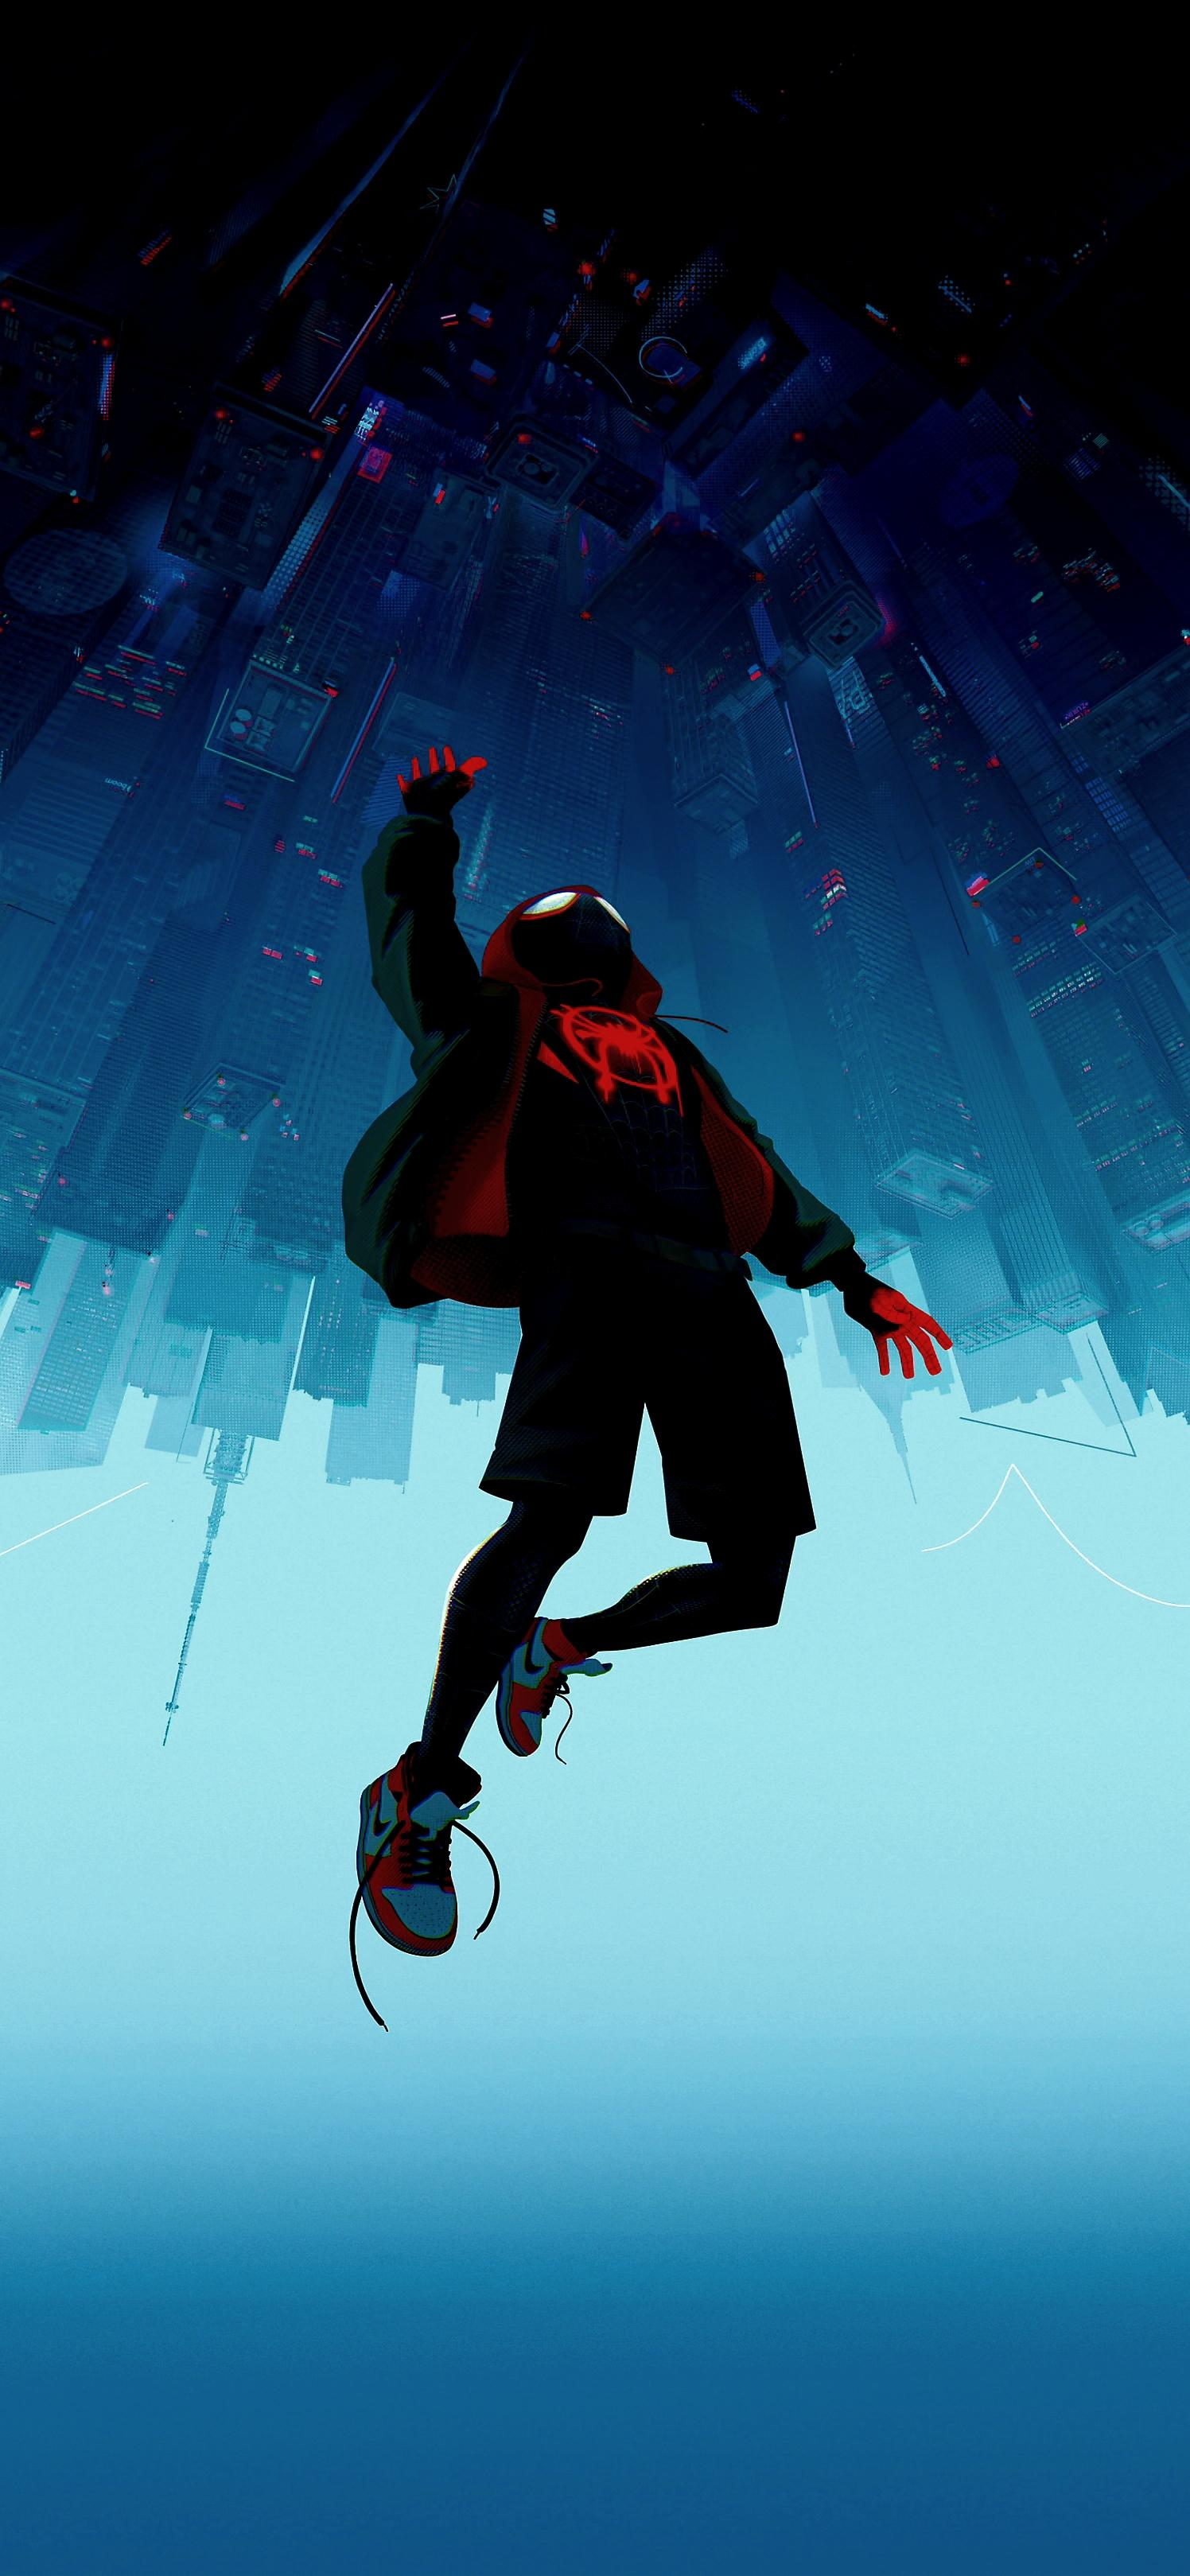 Spiderman in the spiderverse again The original wallpaper wasnt 1496x3238